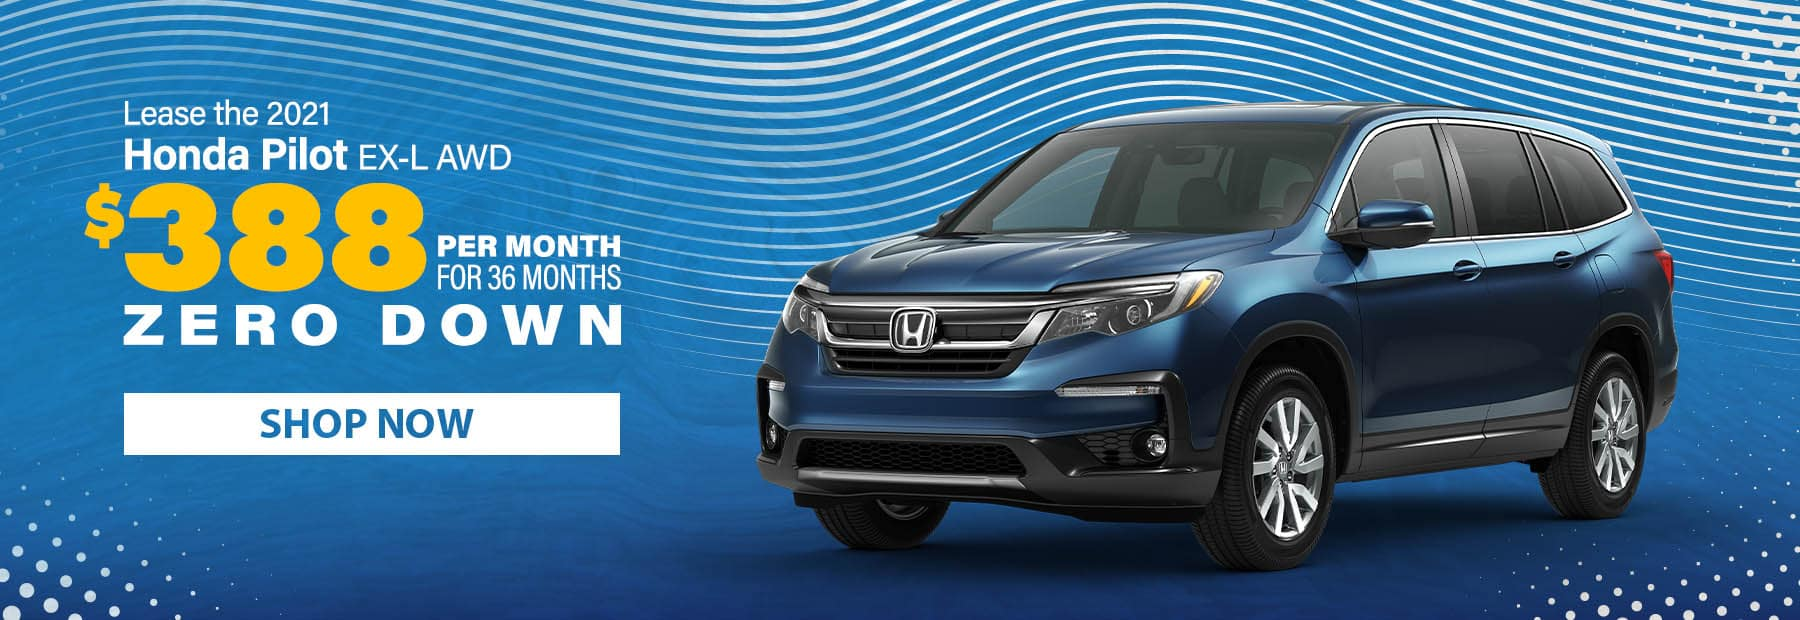 Lease a 2021 Honda Pilot EX-L AWD SUV for $388/mo. for 36 months with $0 down